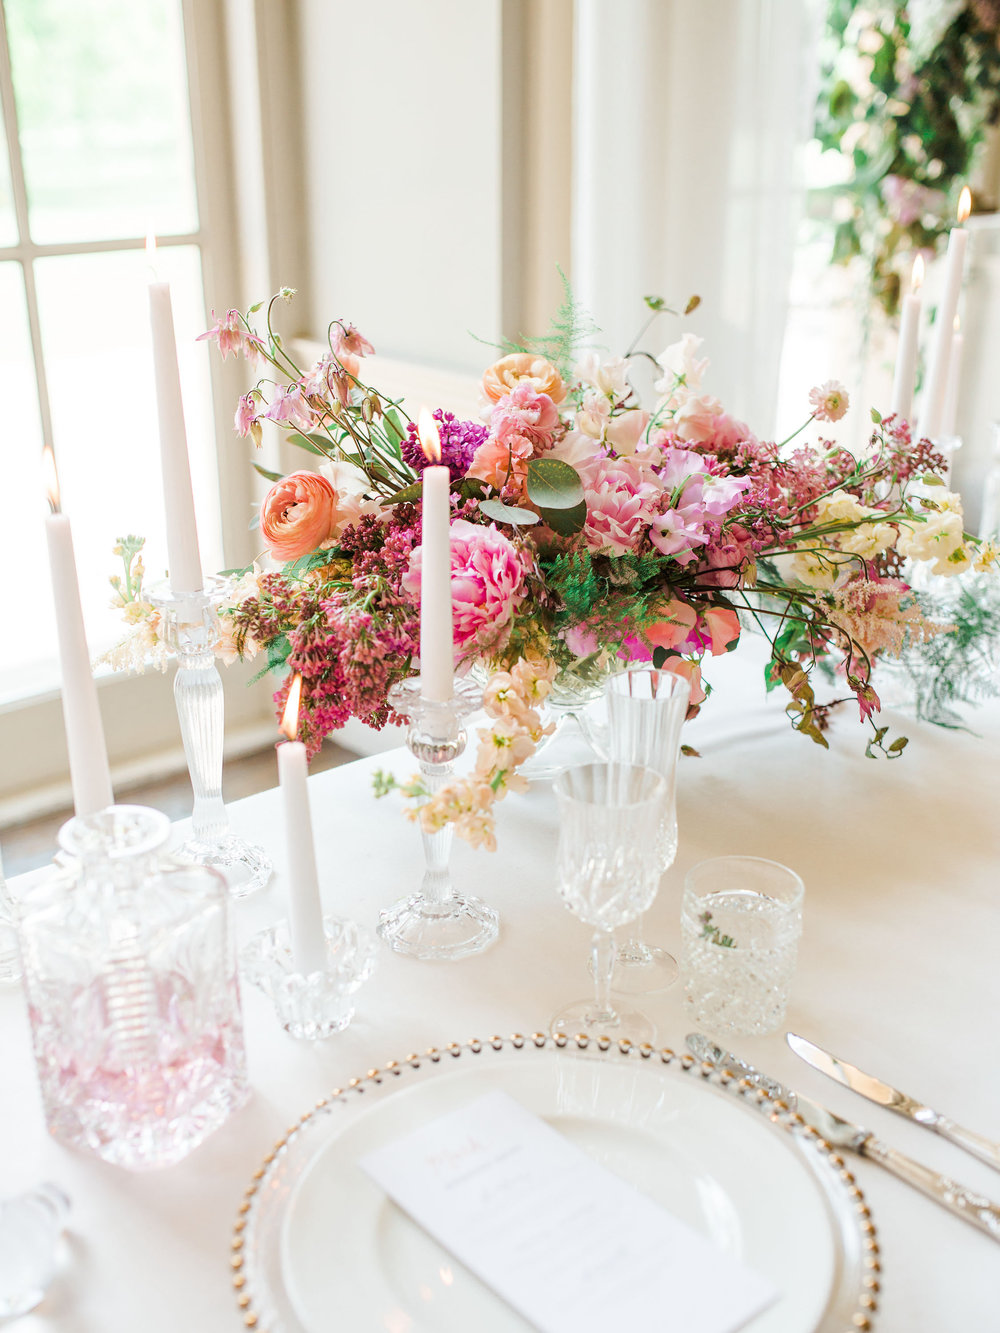 Full glass place setting